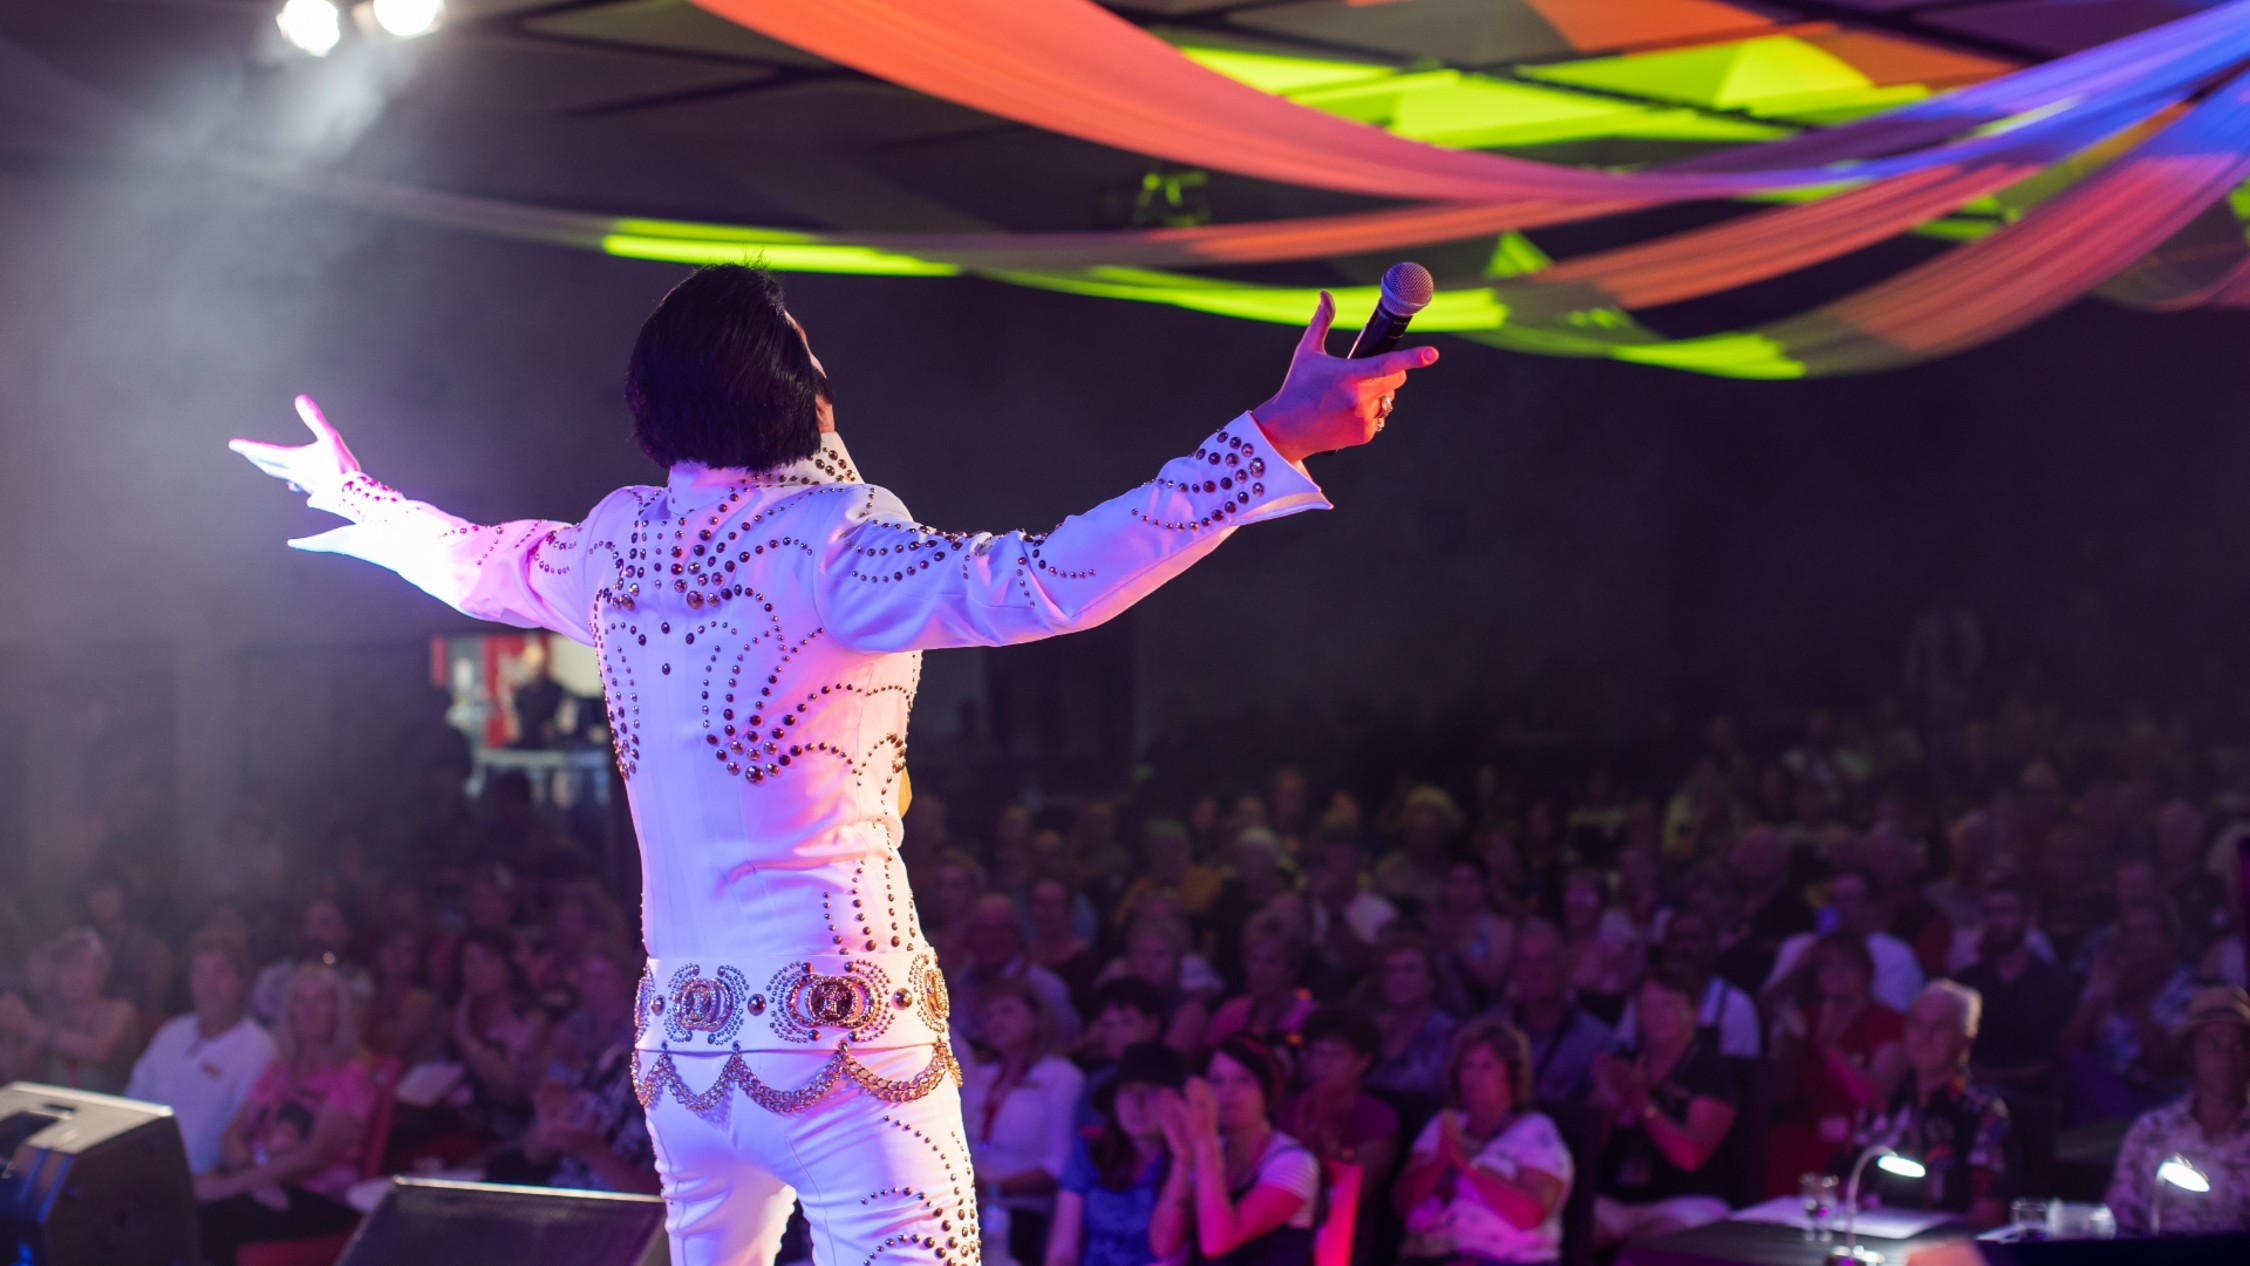 The audience watch the main stage of the Parkes Elvis Festival